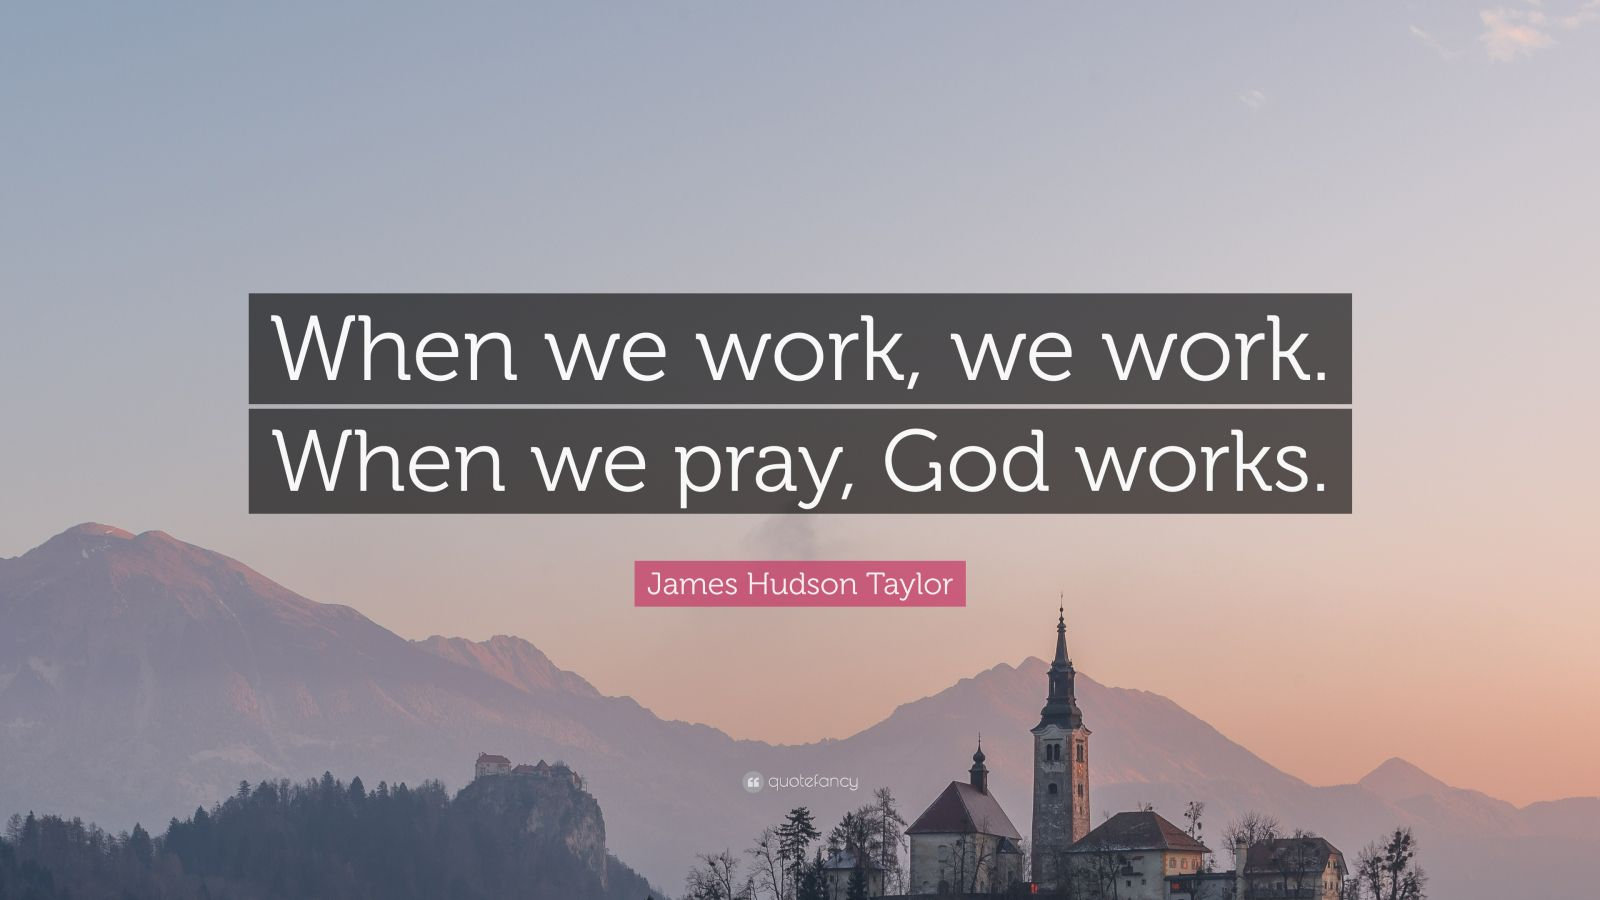 Courage Wallpapers Quotes James Hudson Taylor Quote When We Work We Work When We